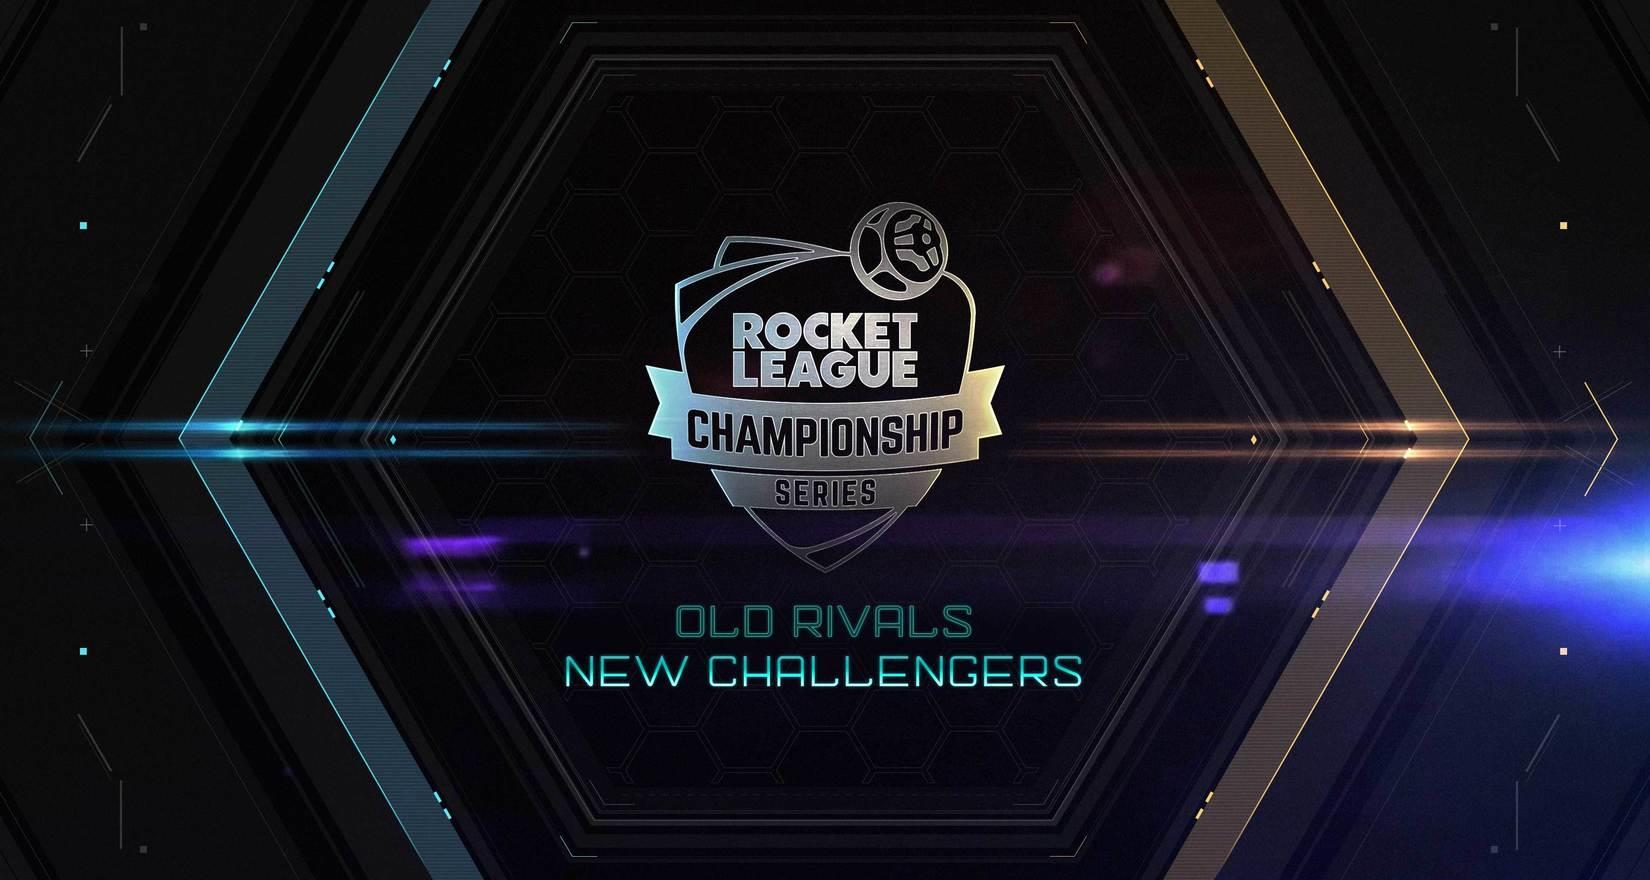 Rocket League Championship Series (Season 3) begins March 2017